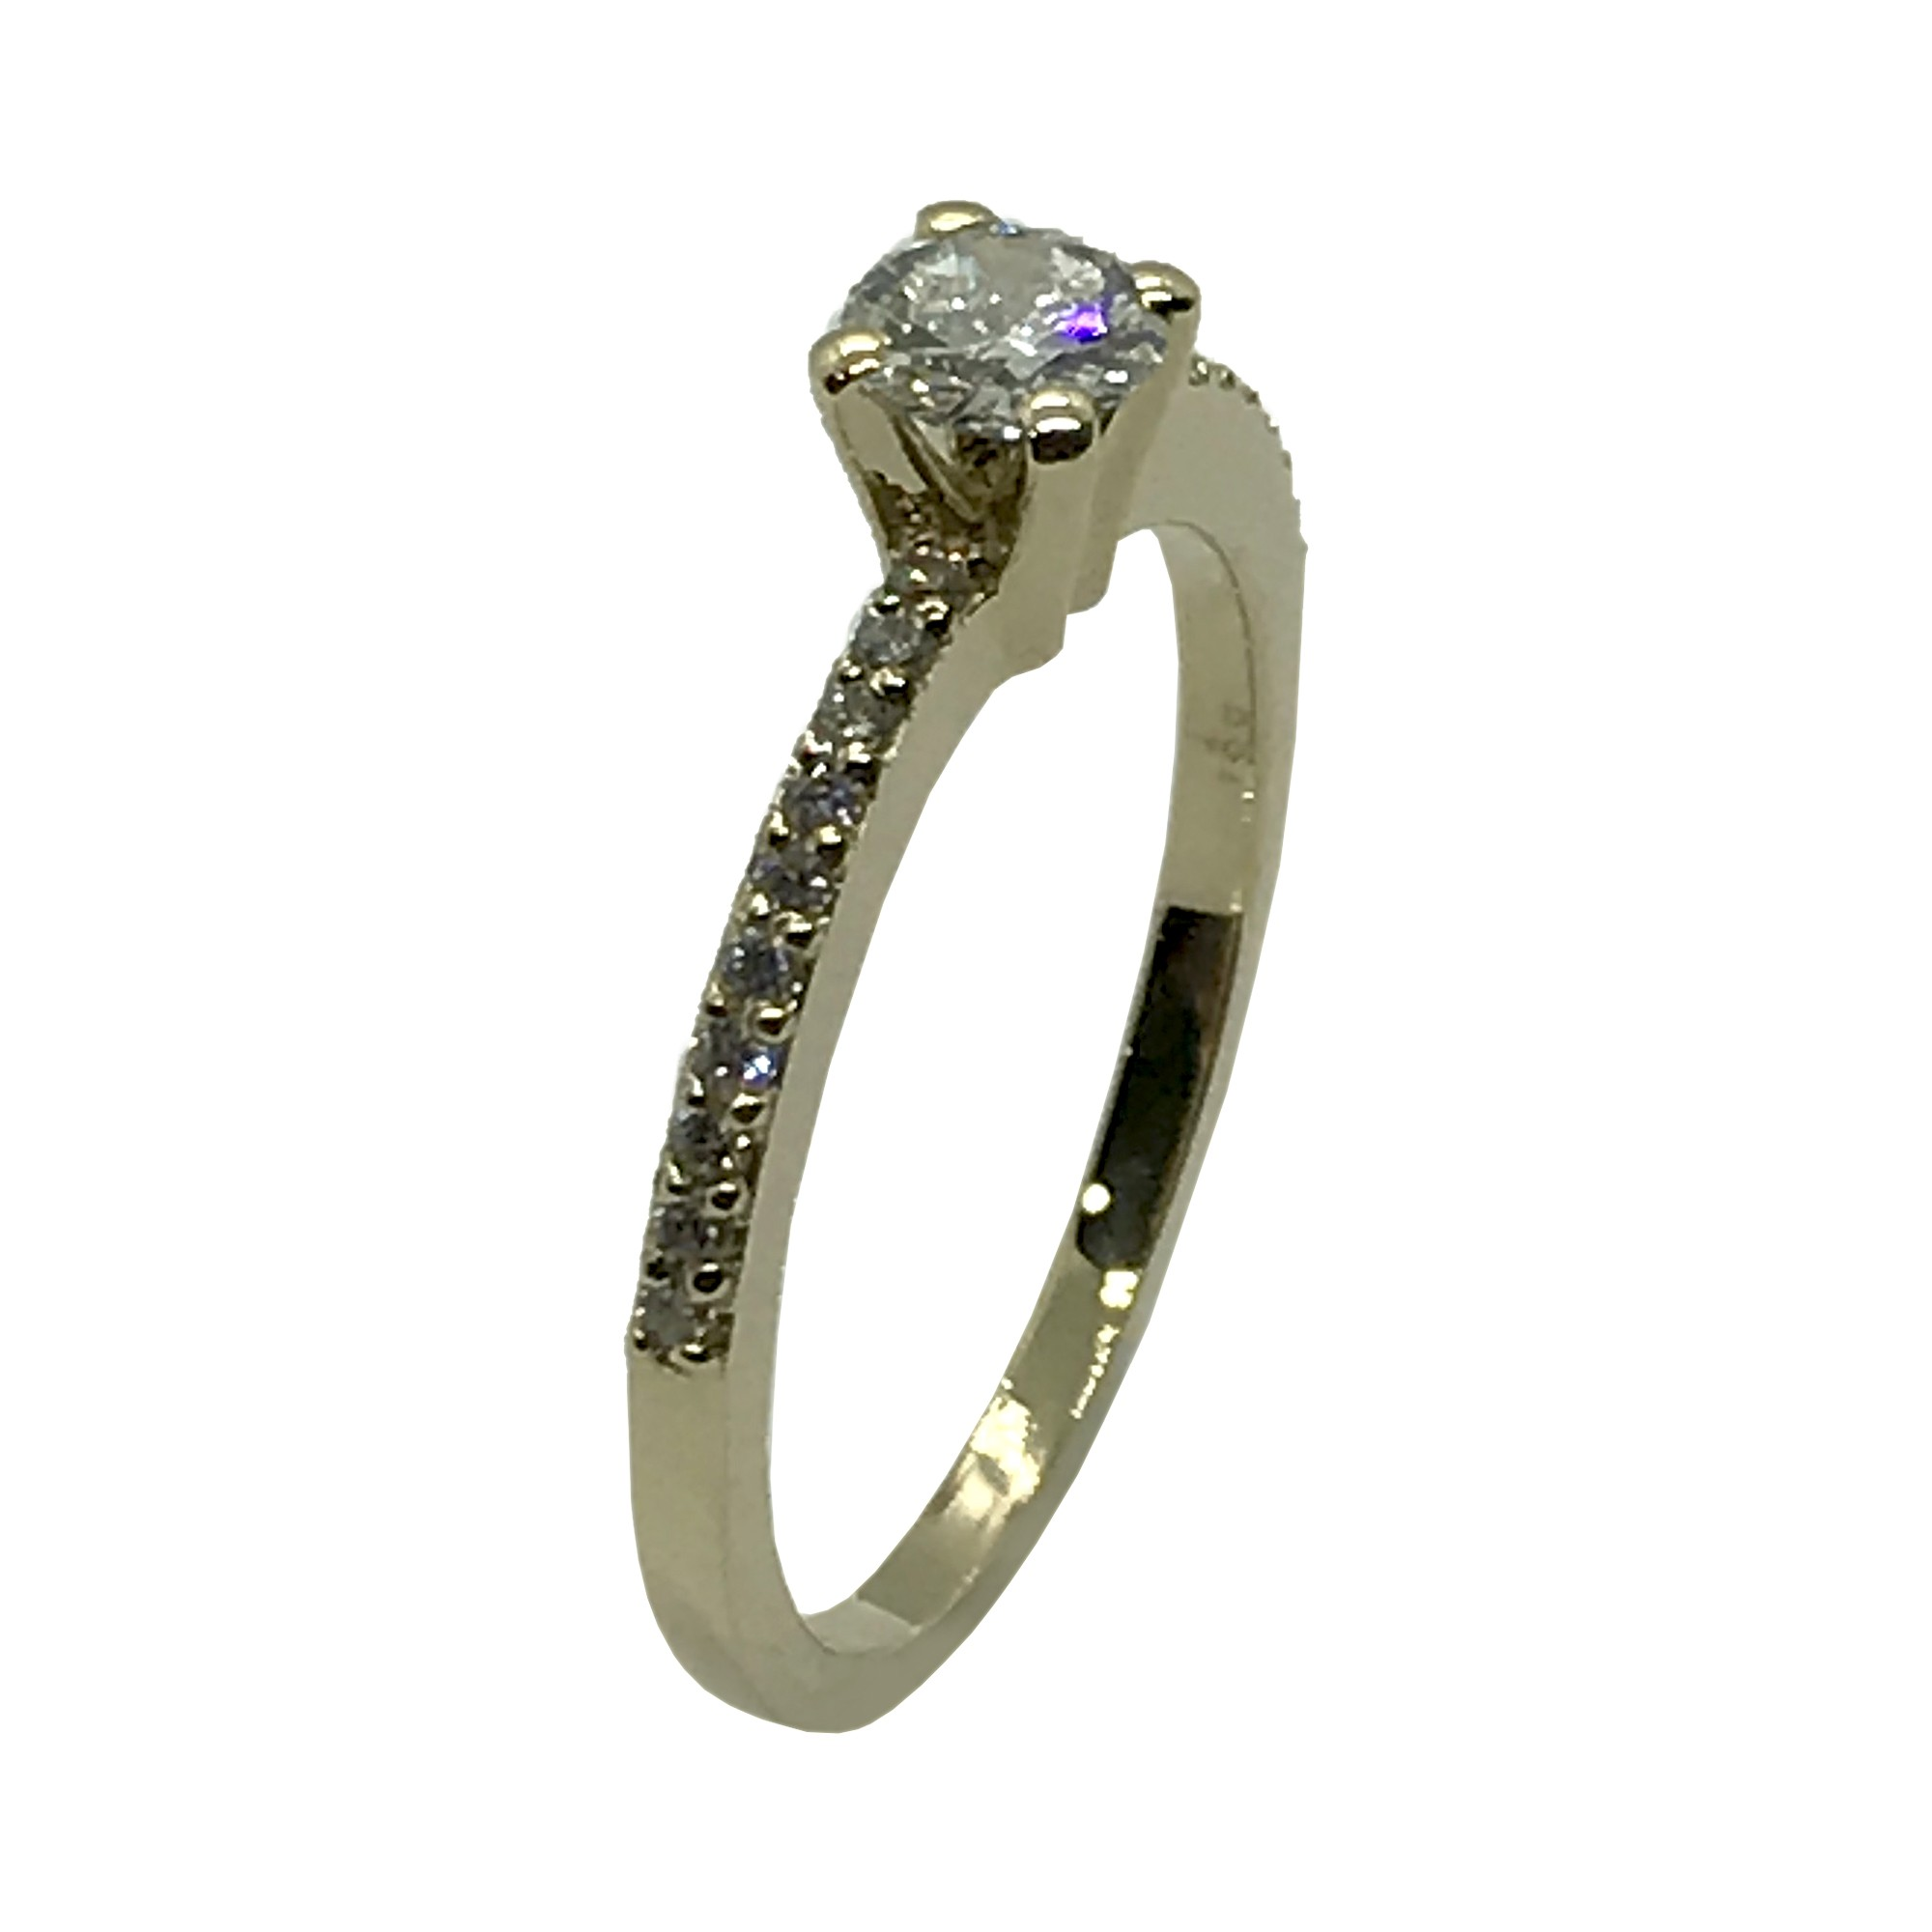 Universe Jewelry - Gold Diamond Ring 0 44 CT  T W  Model Number